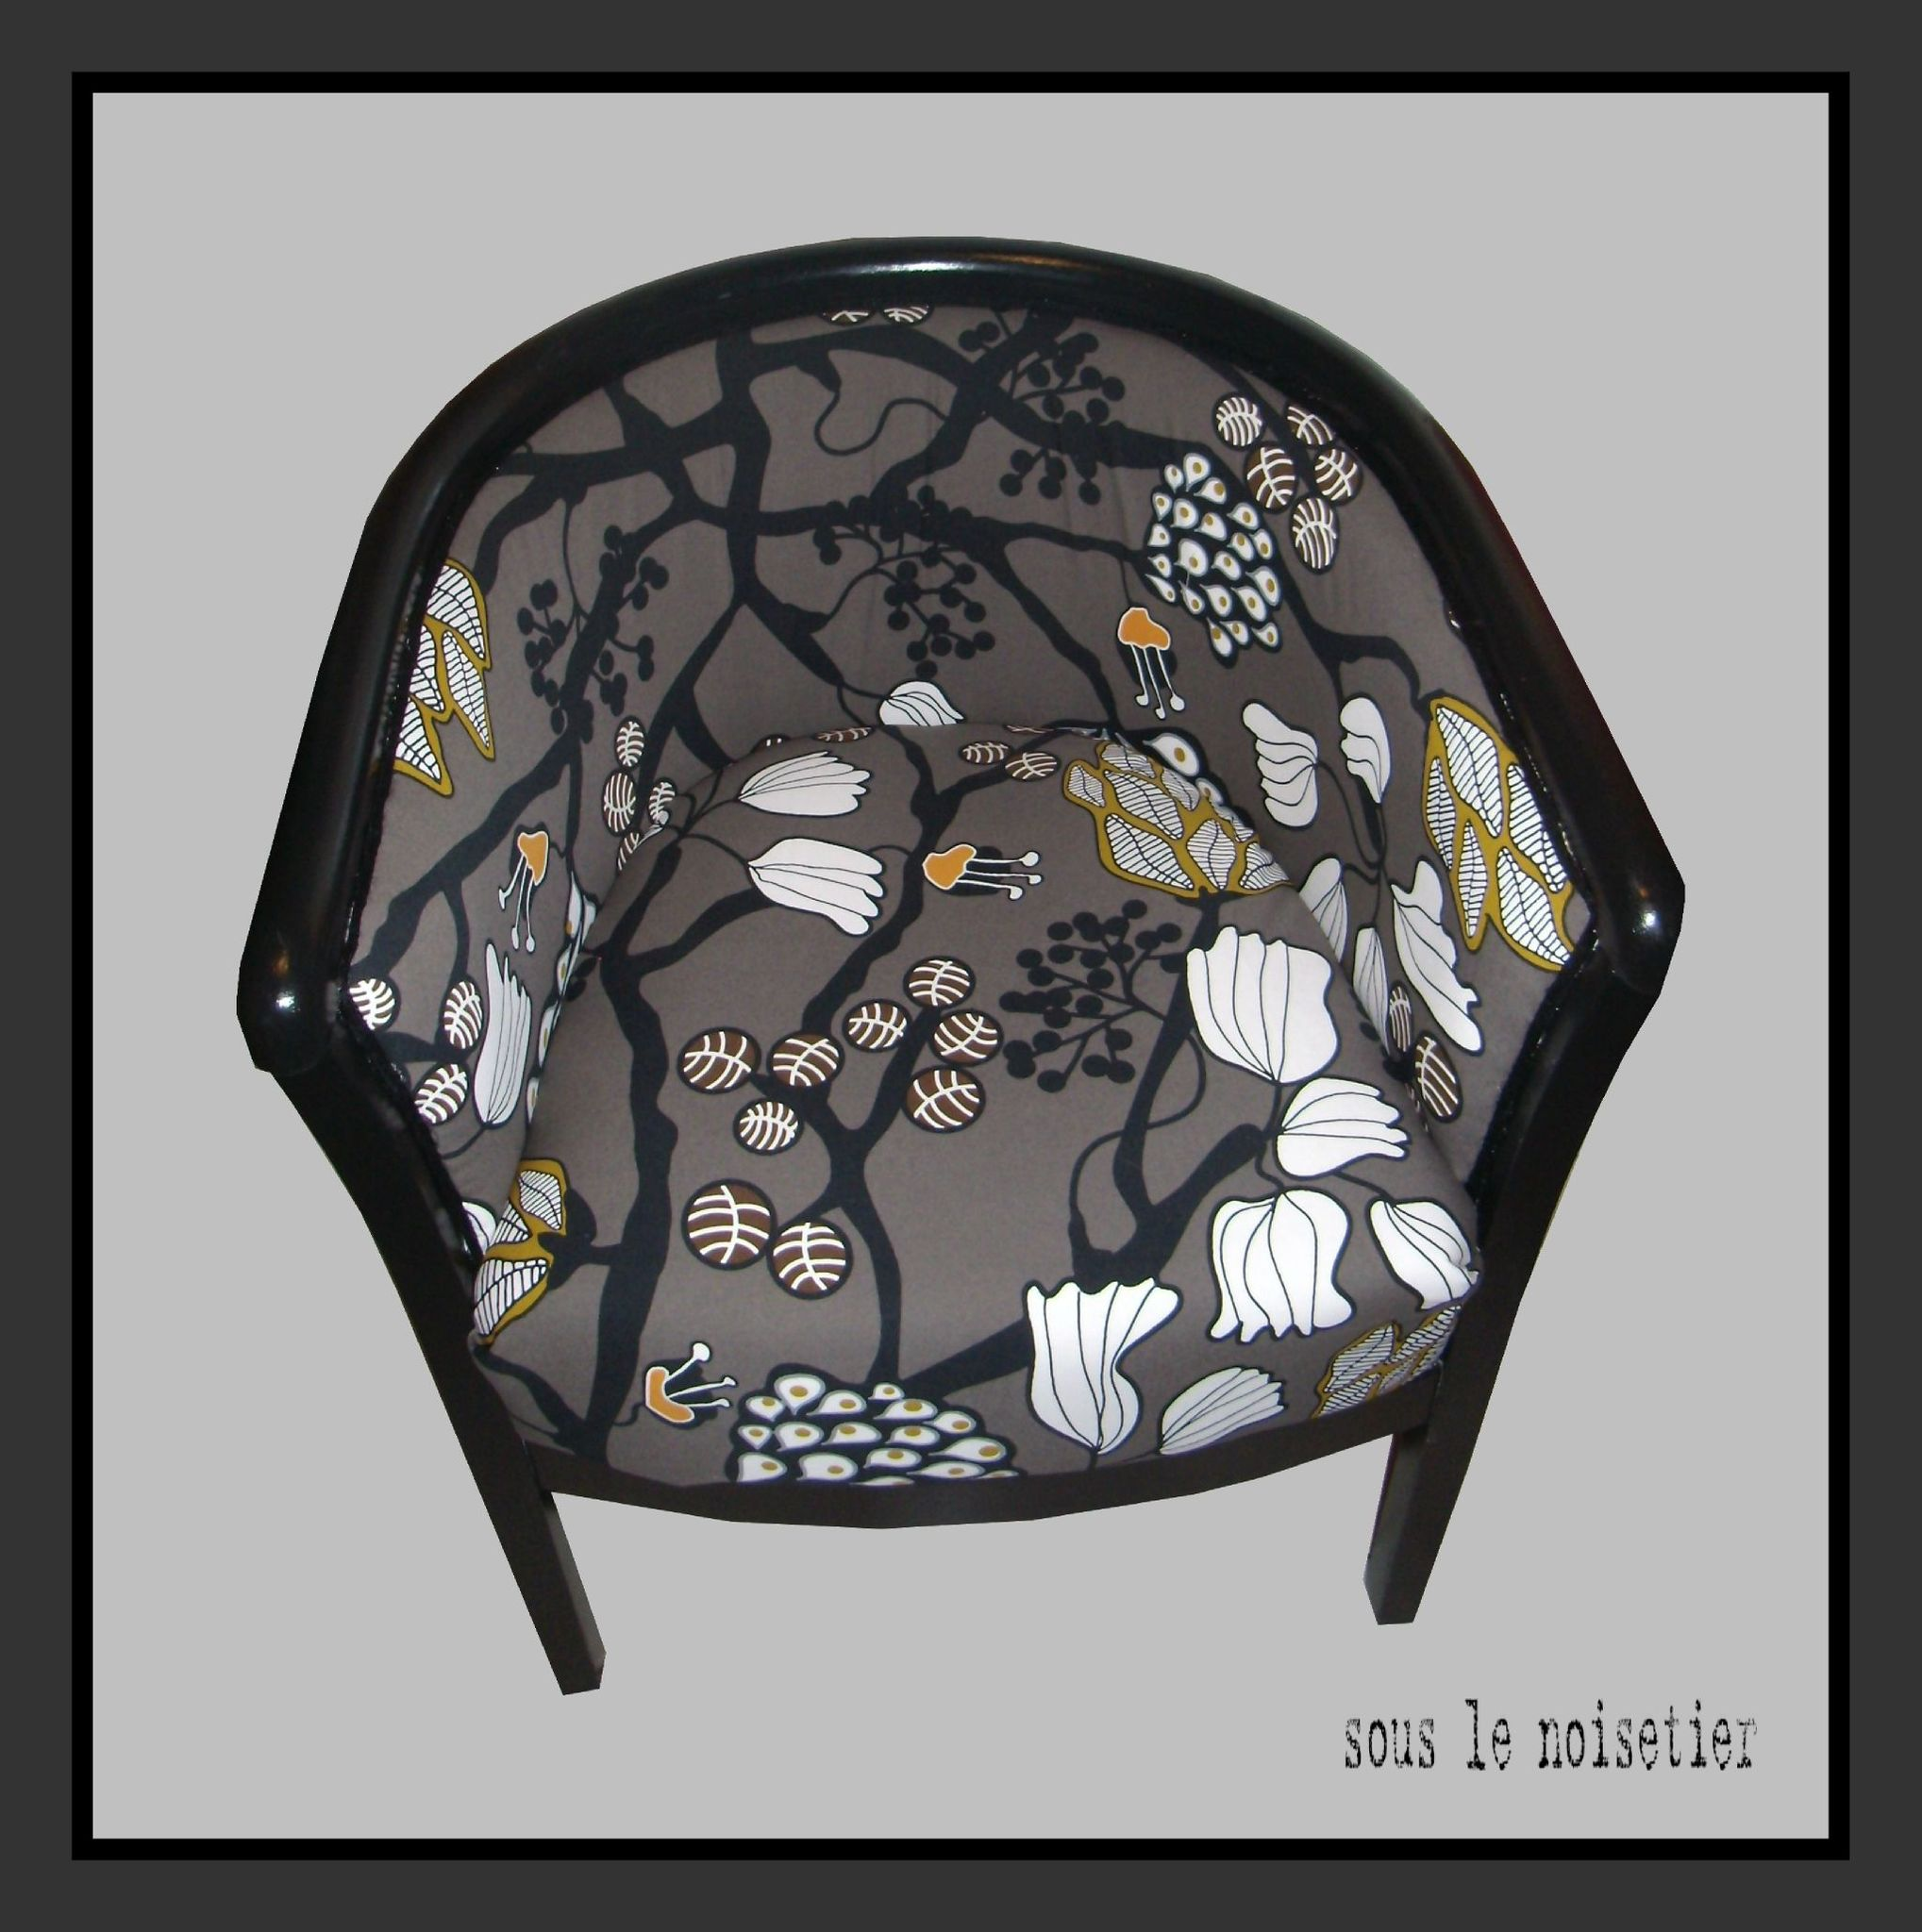 fauteuil n°4